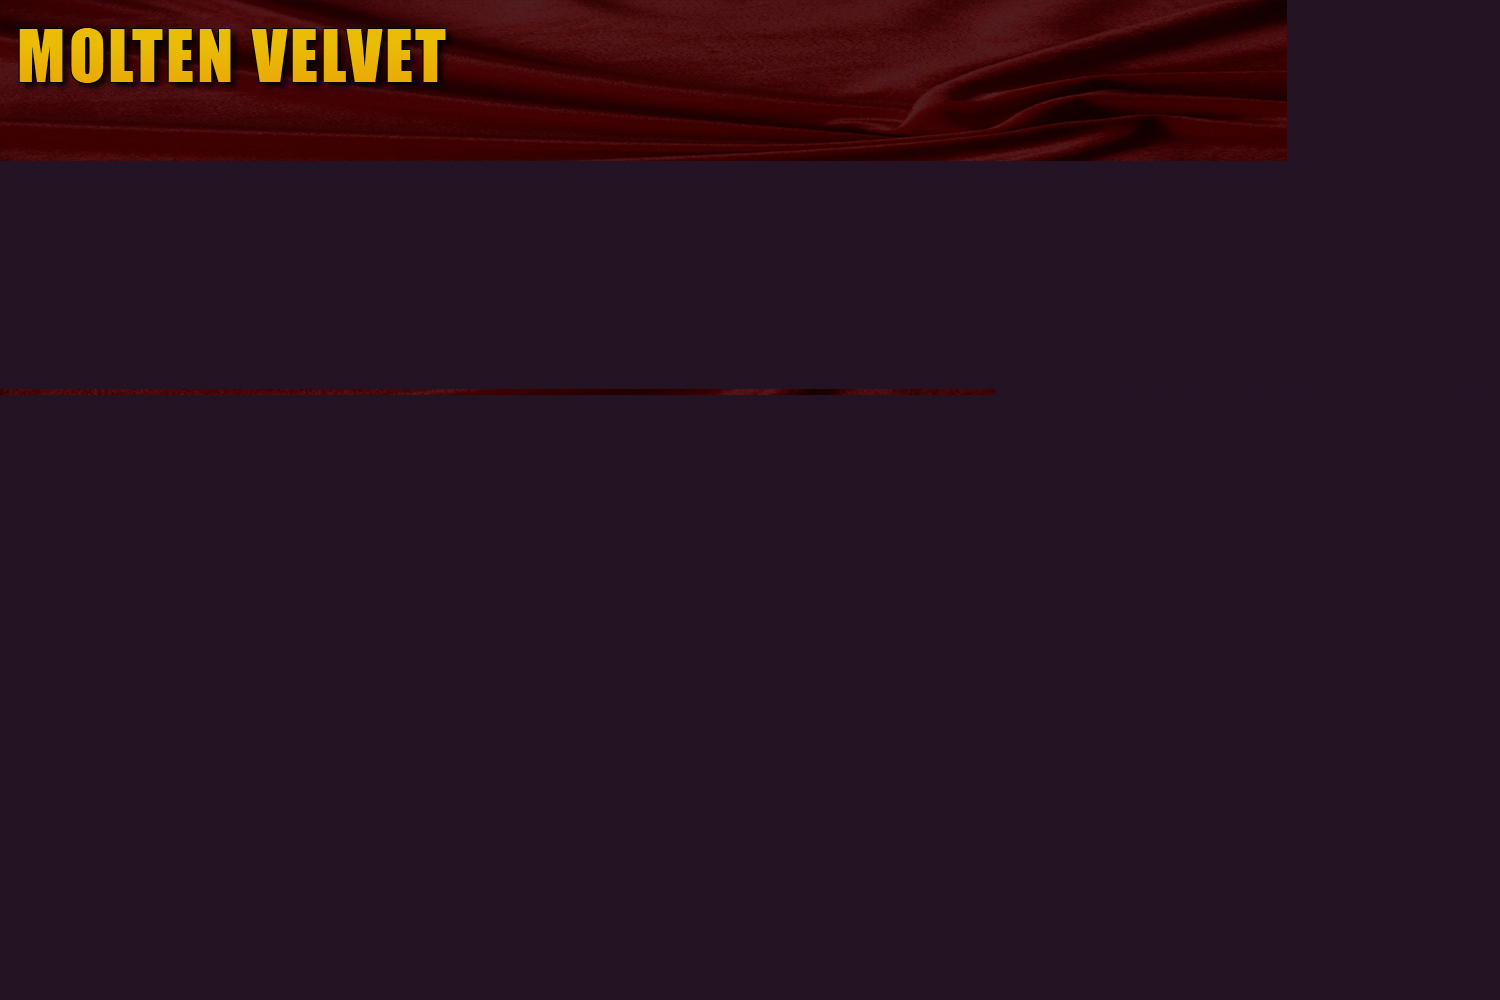 Molten Velvet: REPORT DEAD OR SLEEPING LINKS HERE